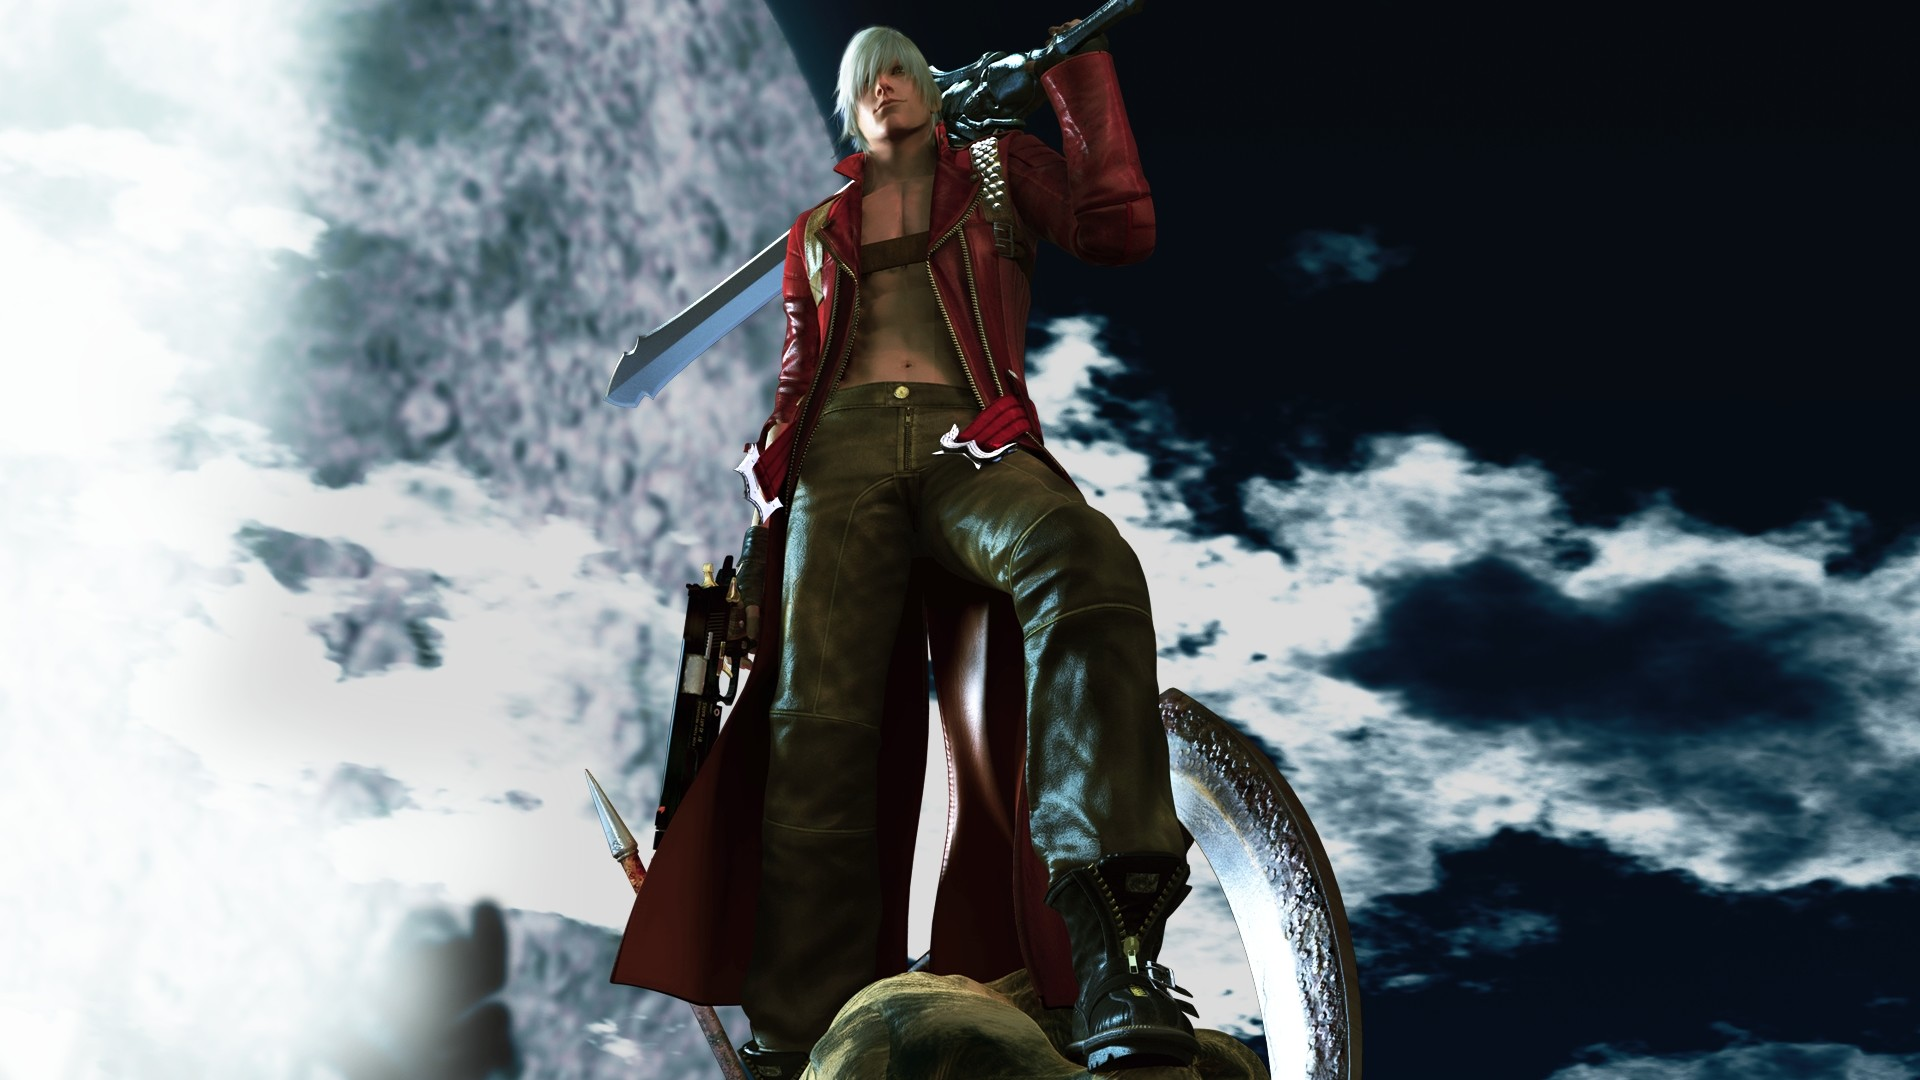 Devil May Cry 3 Wallpaper (62+ images)